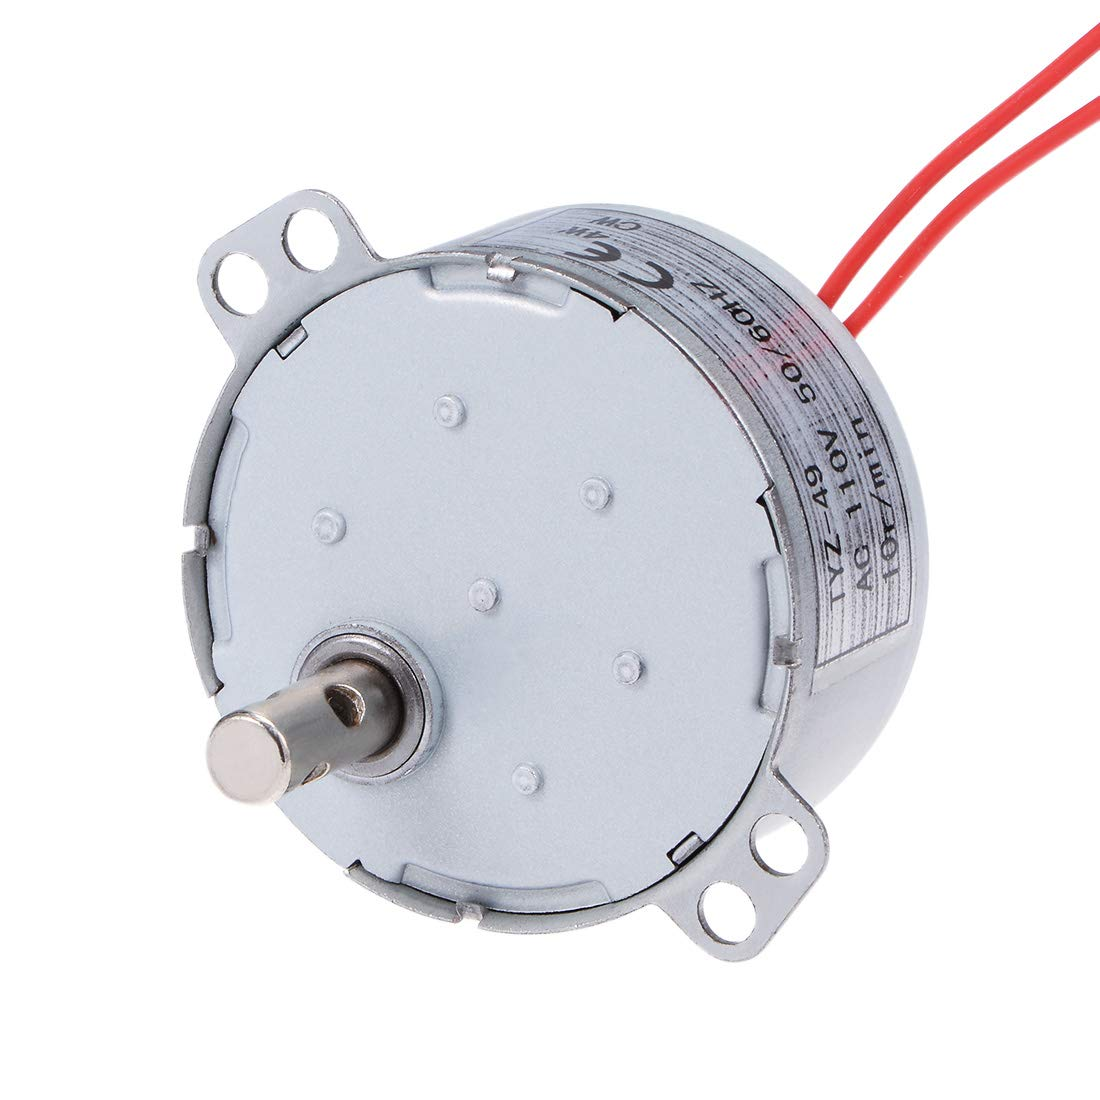 uxcell Synchronous Motor AC 110V 50/60Hz 10RPM CW Torque 4W Turntable Gear Box for Microwave Oven